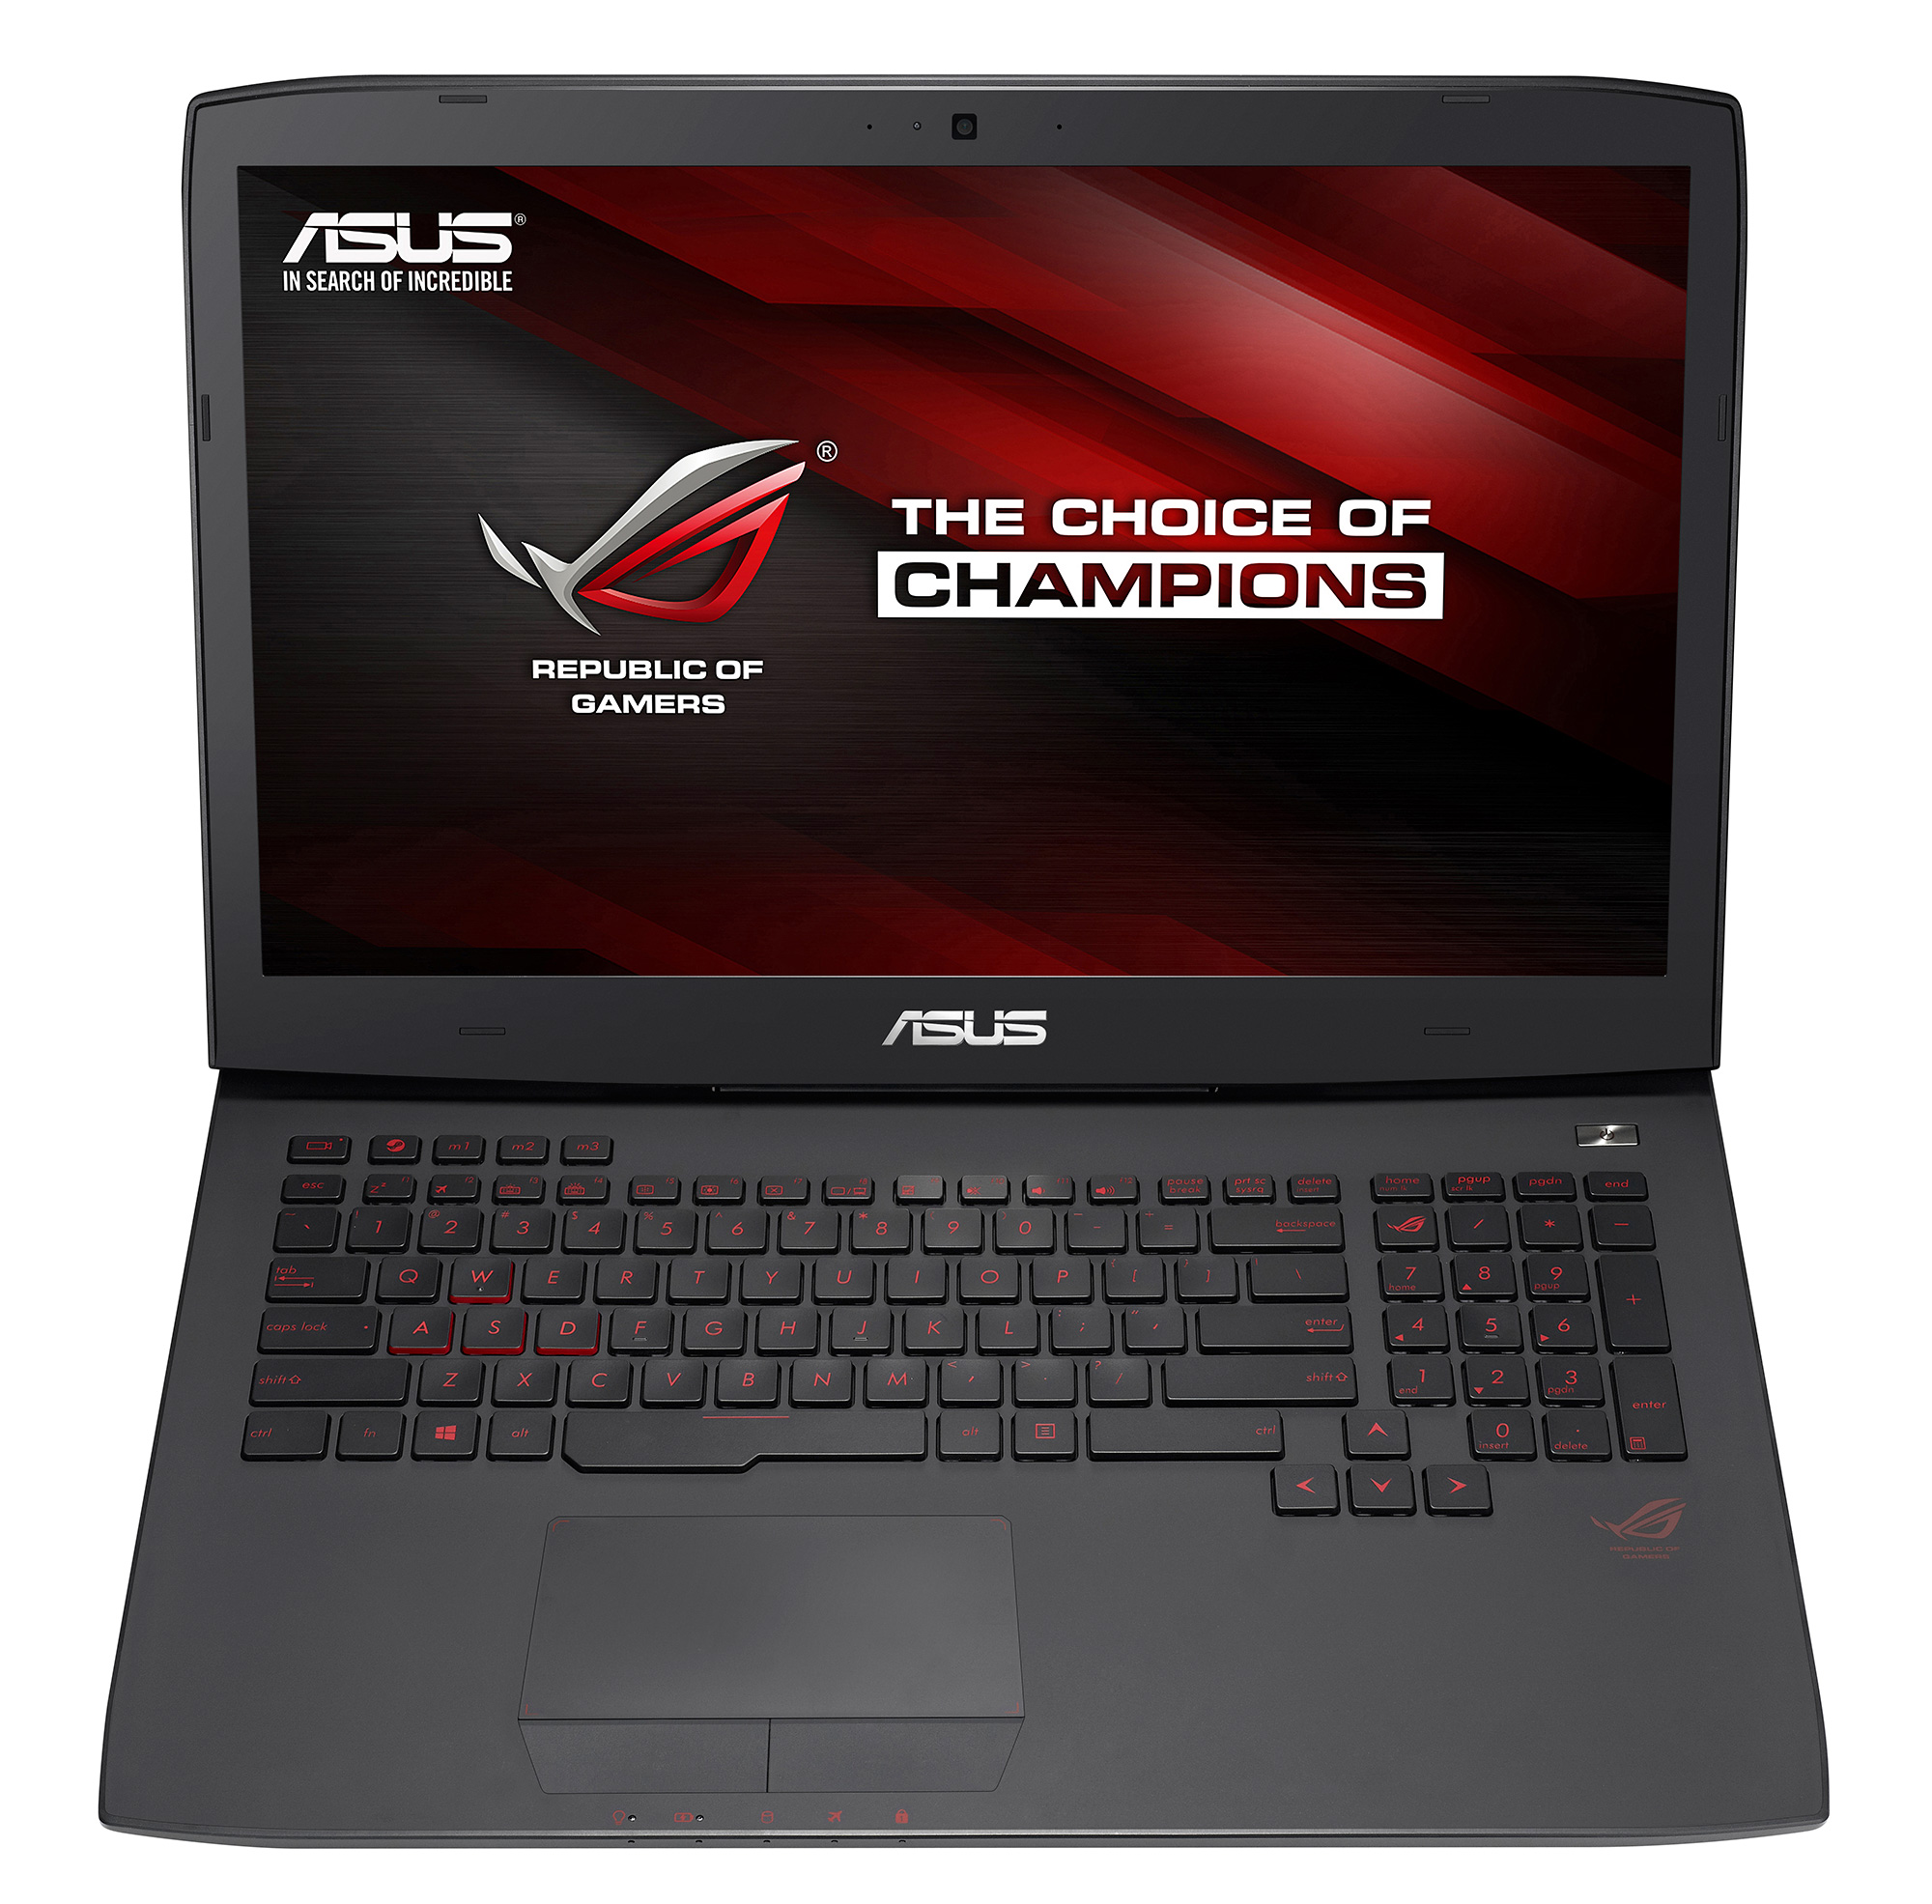 asus rog announces g751 gaming laptop with gtx 900m series. Black Bedroom Furniture Sets. Home Design Ideas